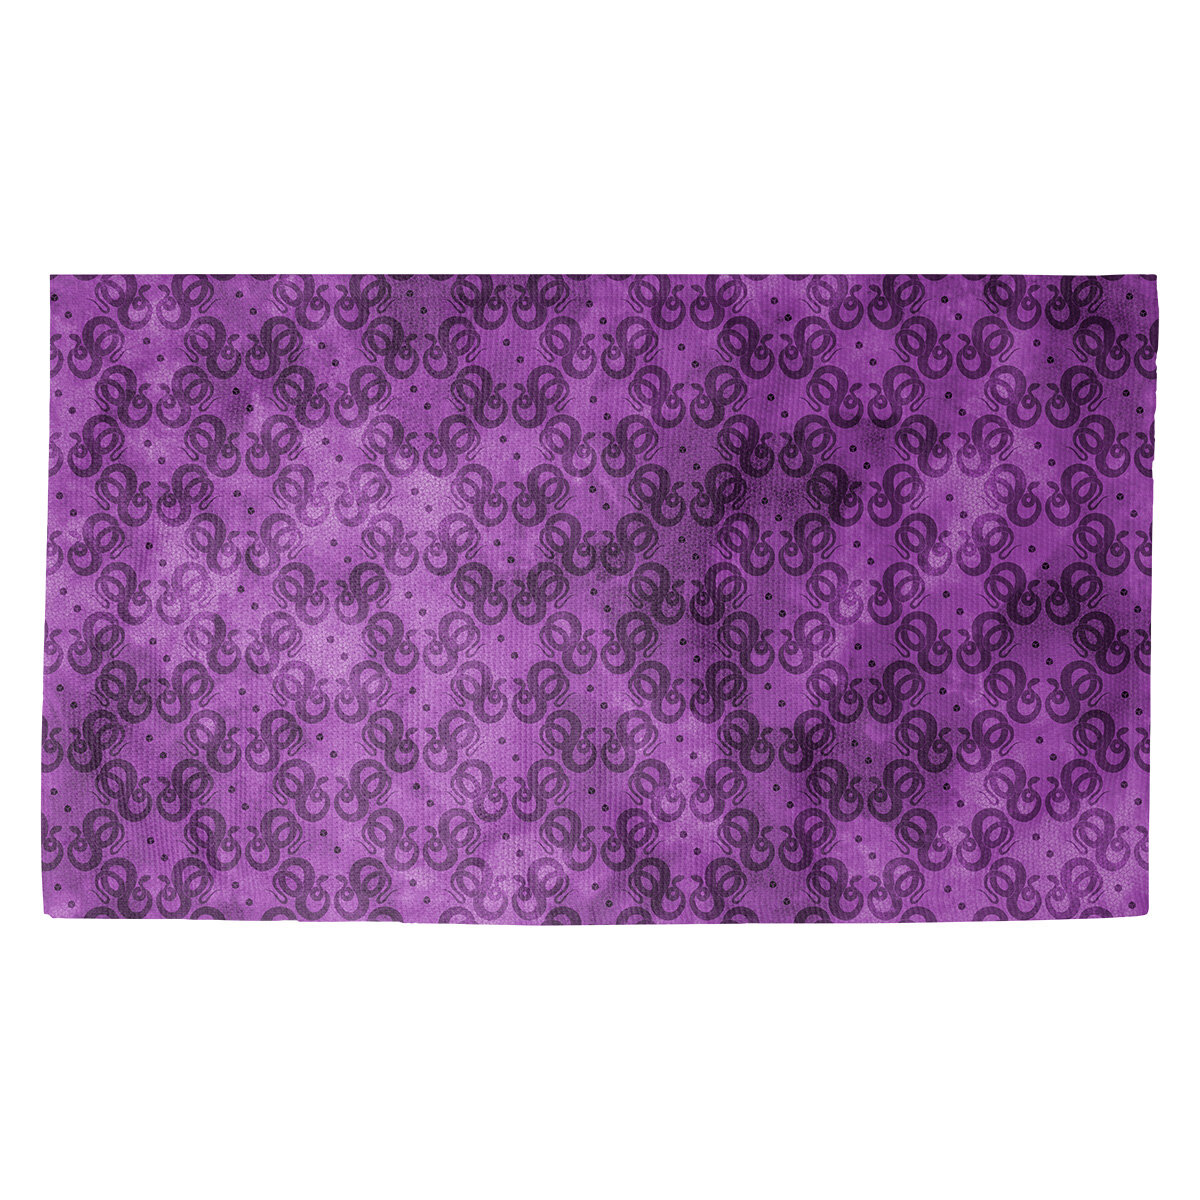 Latitude Run Avicia Snakes Purple Black Area Rug Wayfair